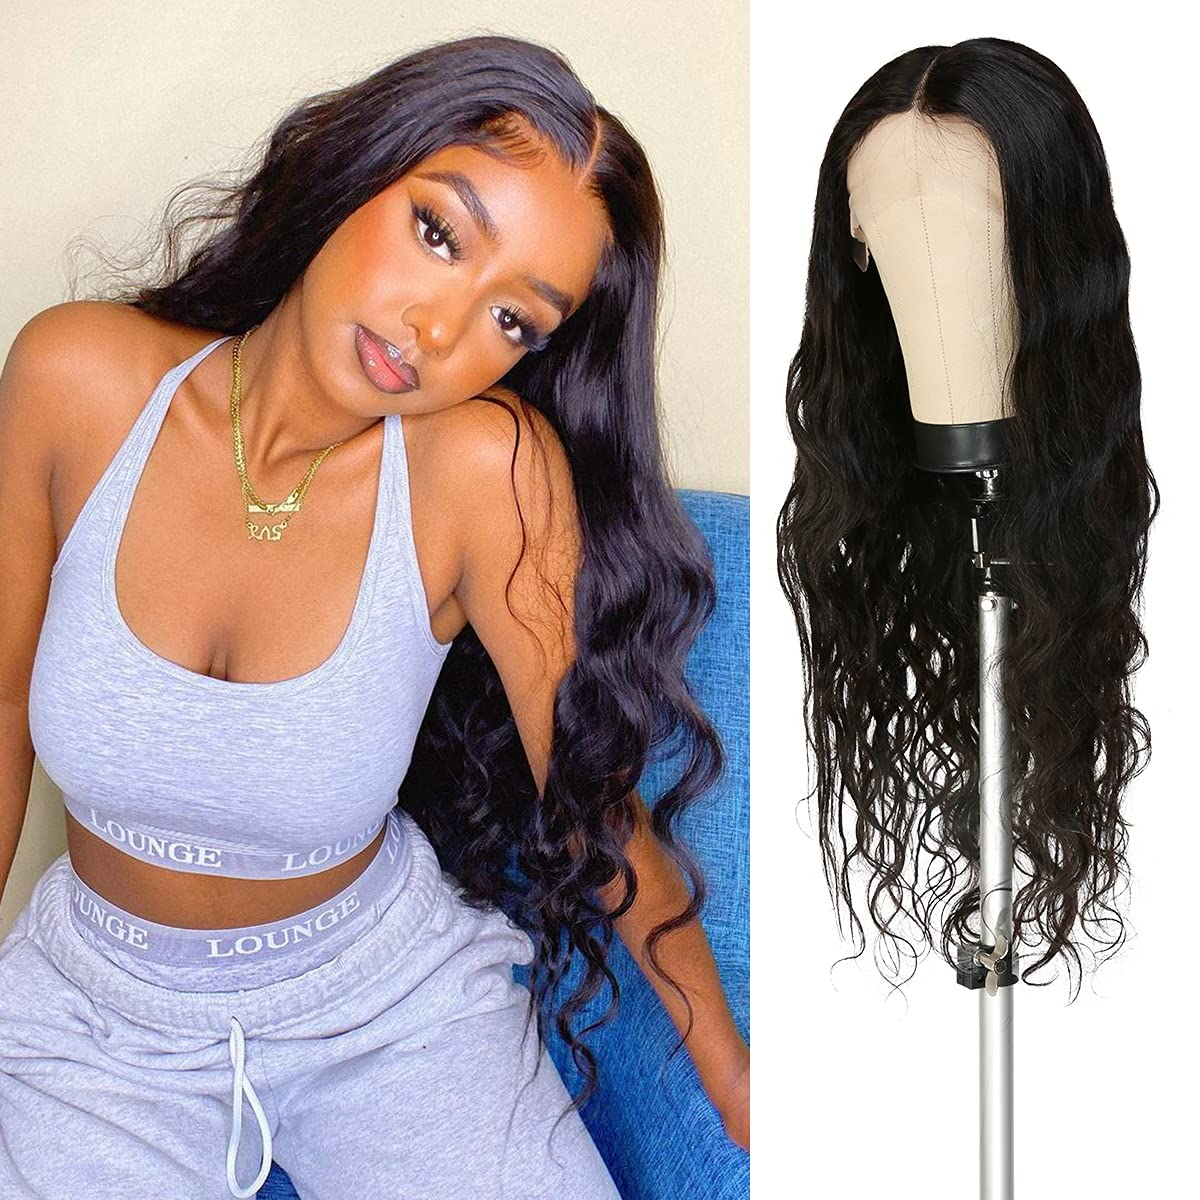 Celebrity 32 Memphis Mall Free shipping on posting reviews Inch HD Lace Front Wave Hair Virgin Human Wig Body